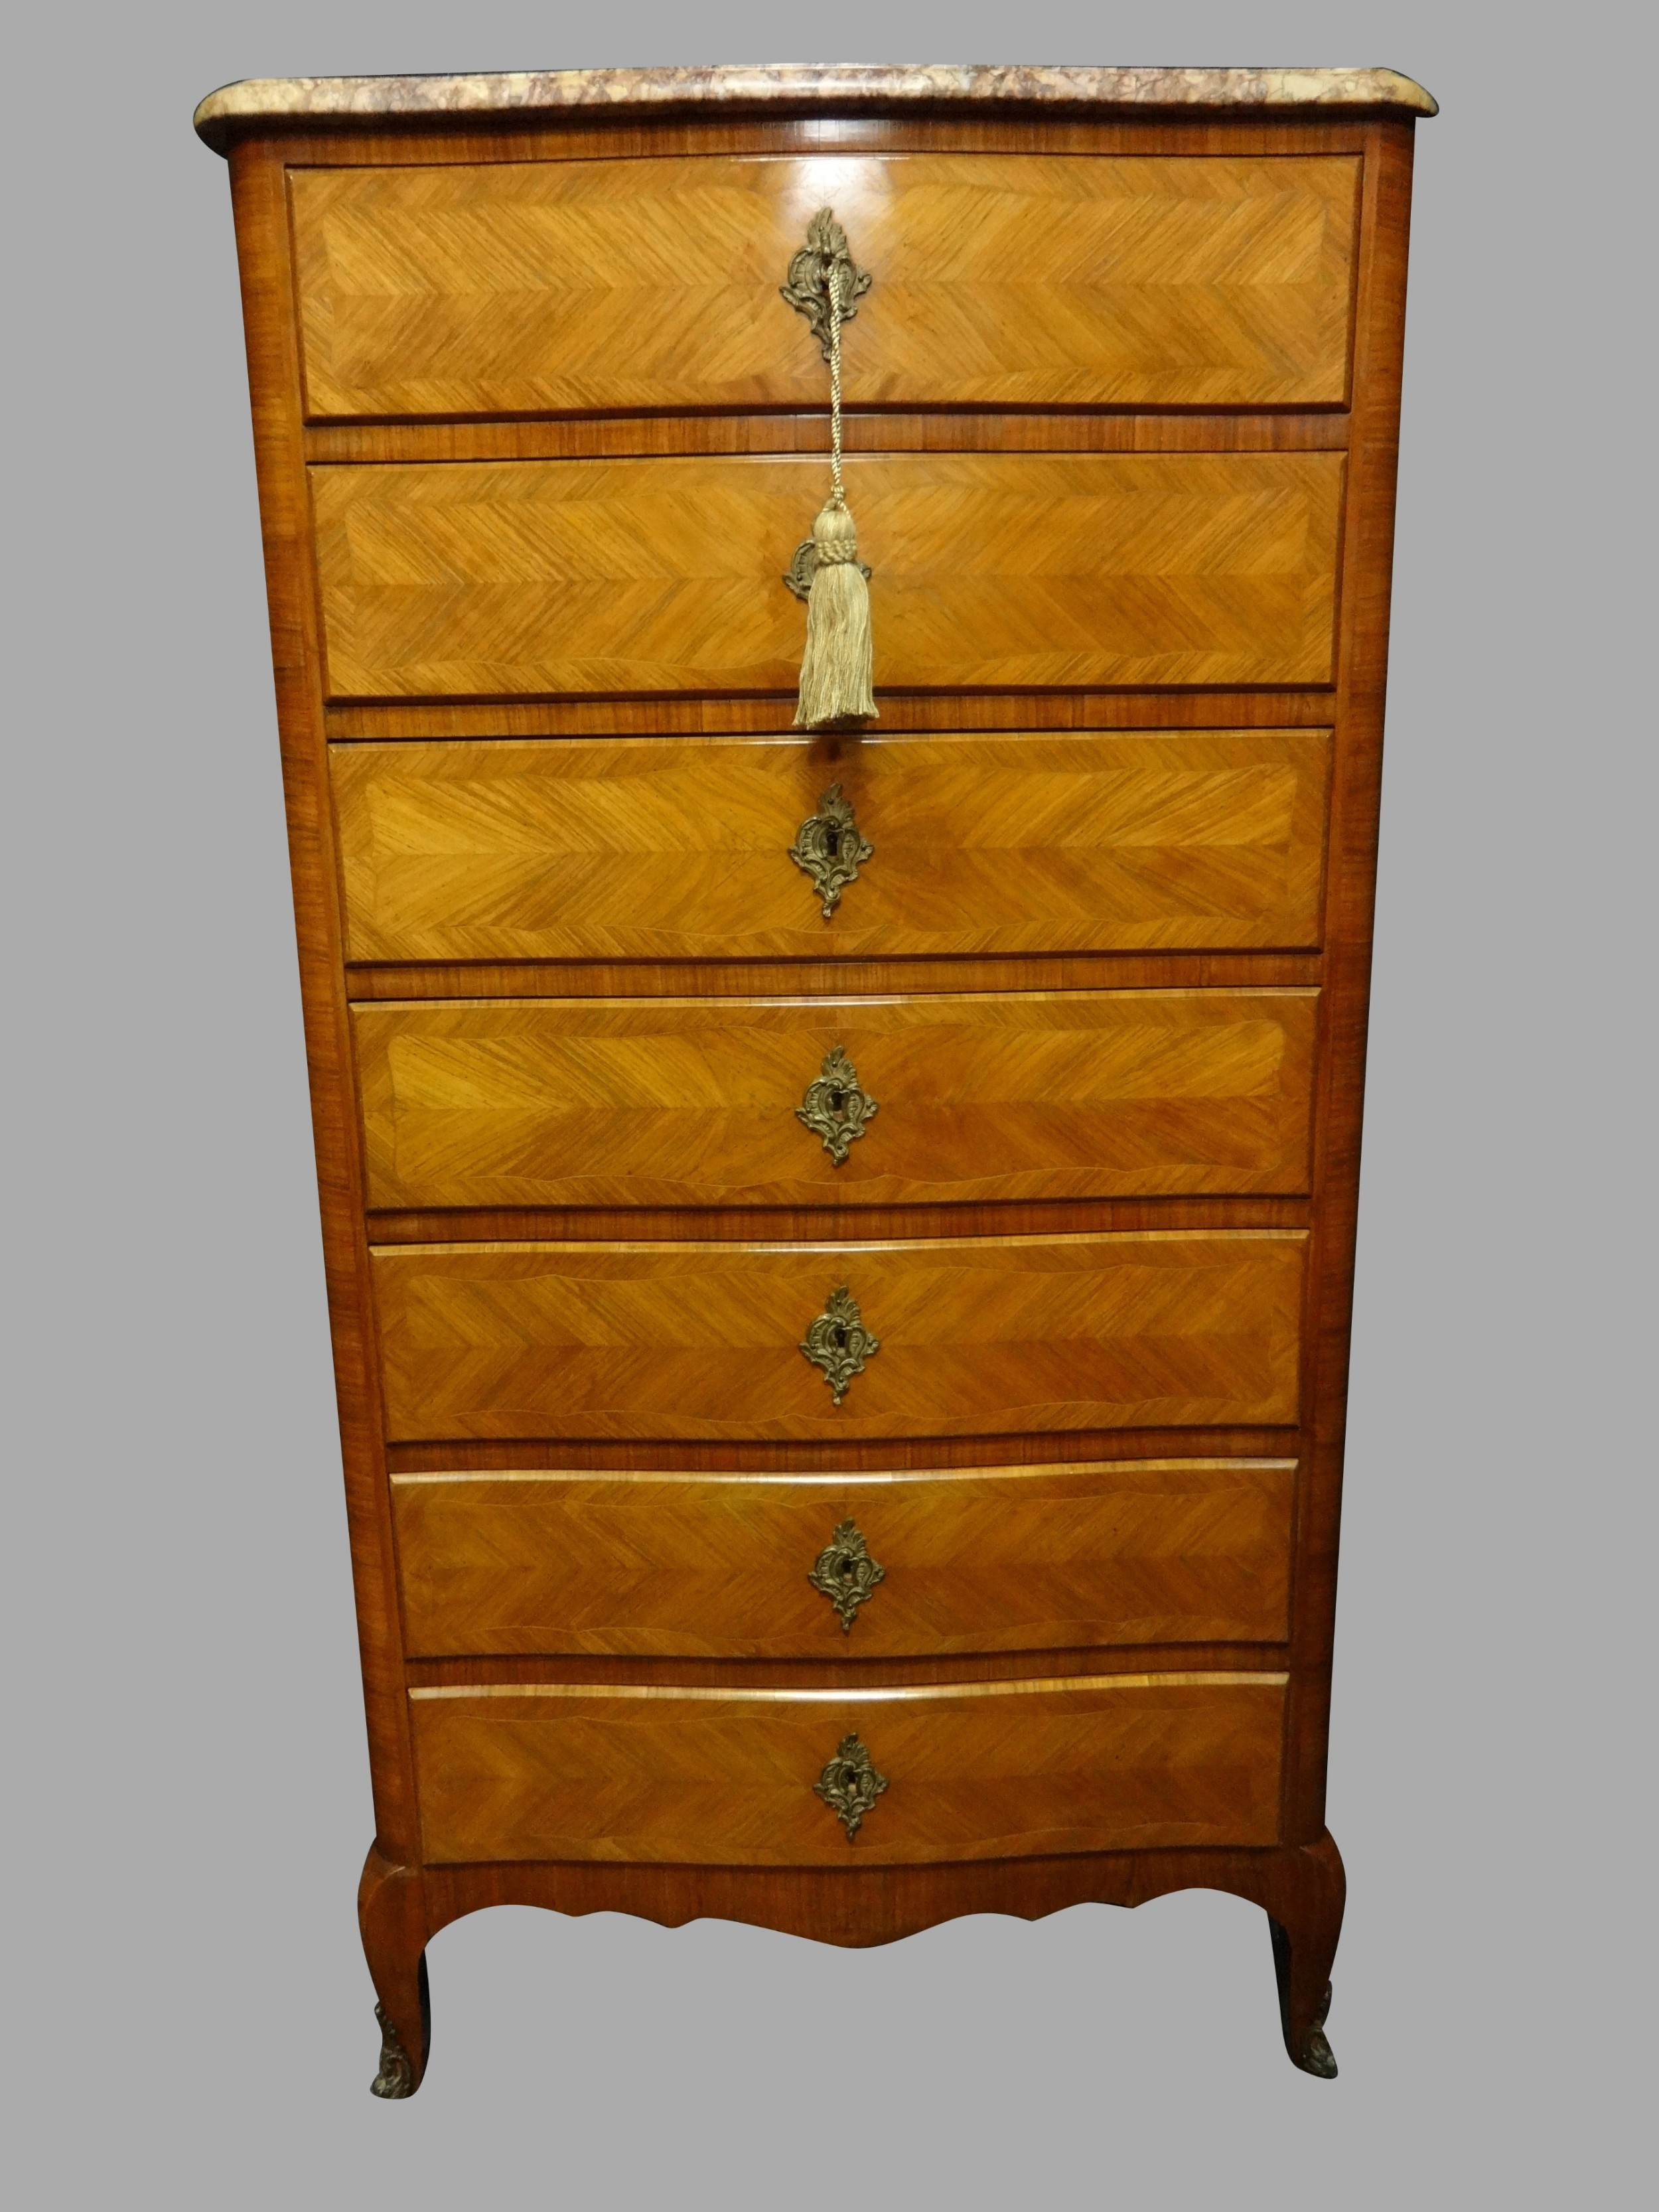 lovely french tulipwood semineer chest of drawers